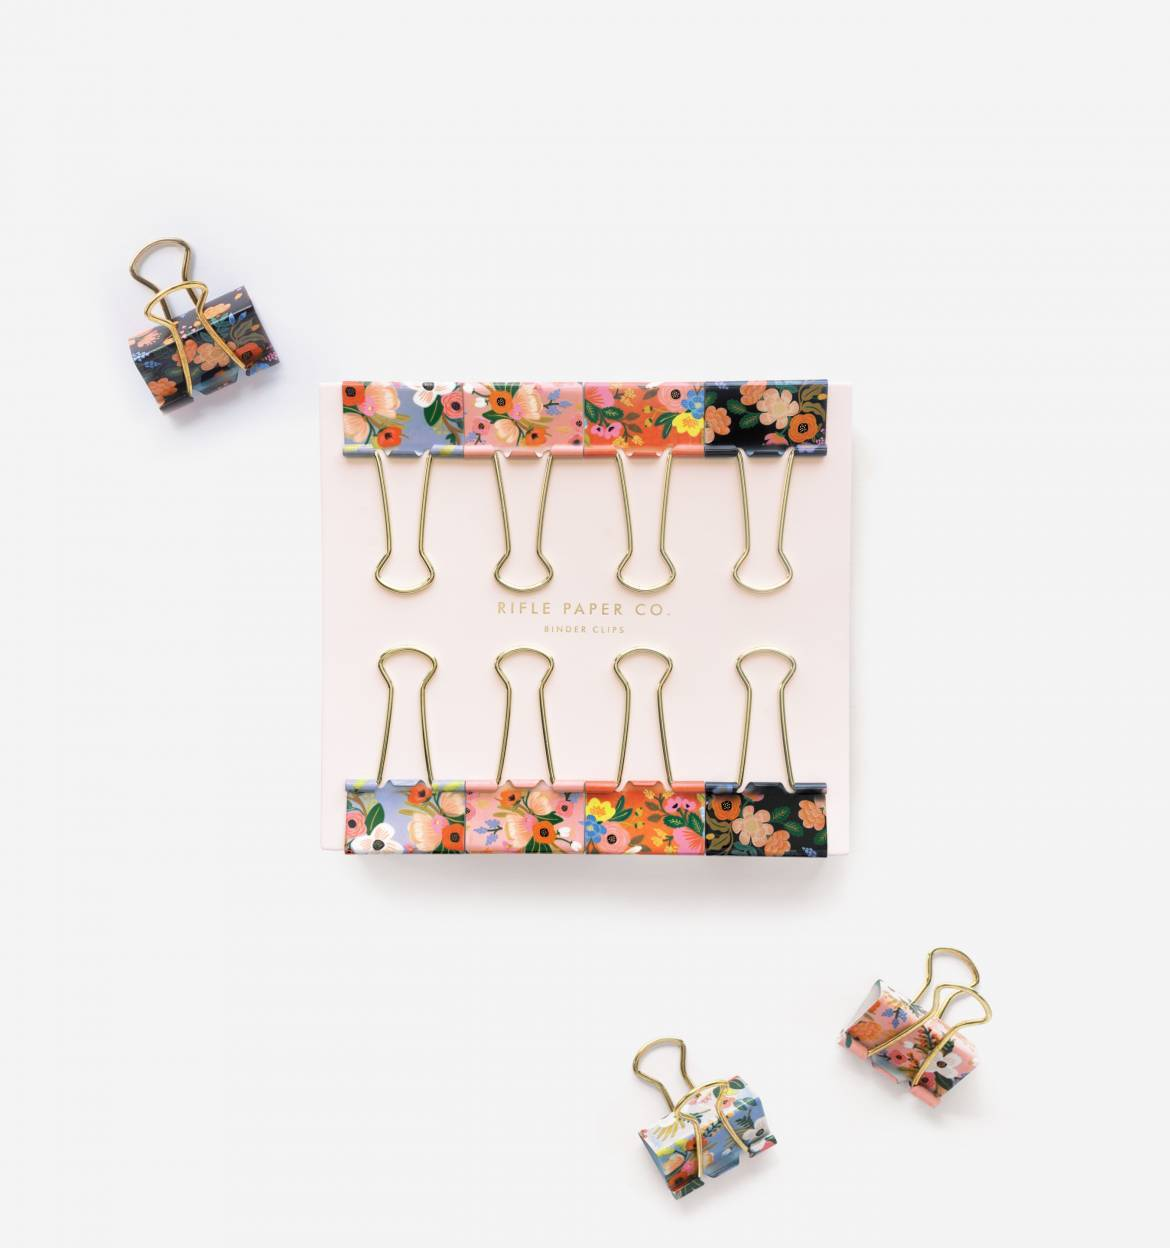 RIFLE - Lively floral binder clips